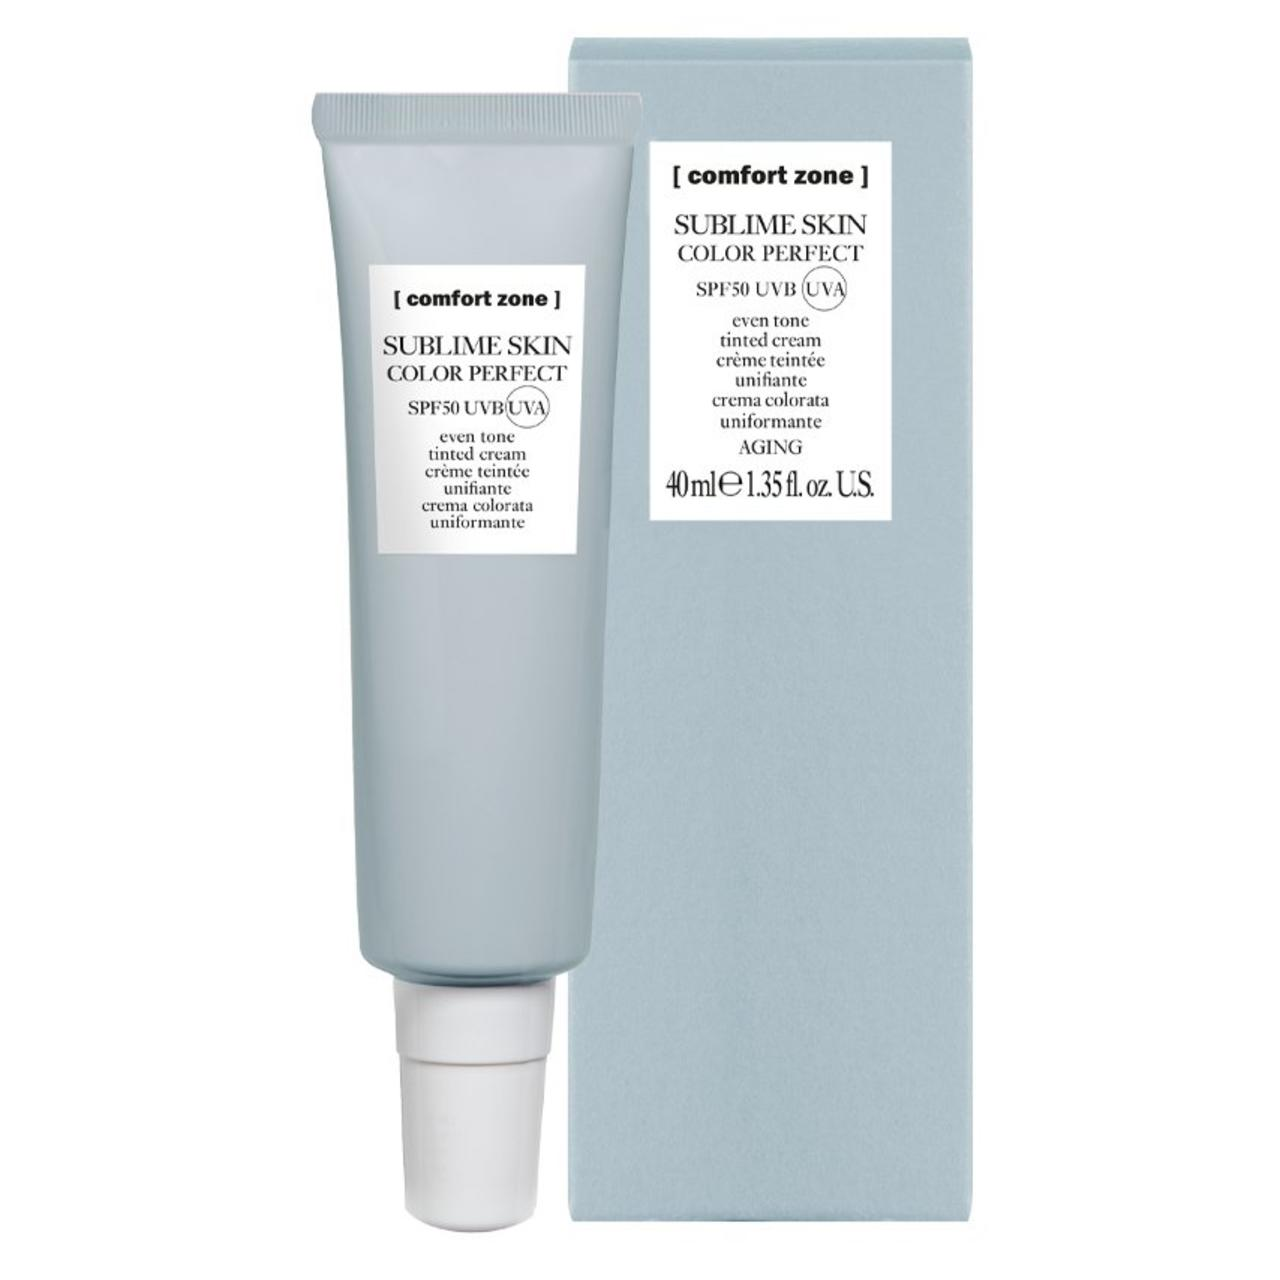 Comfort Zone Sublime Skin Color Perfect SPF 50.